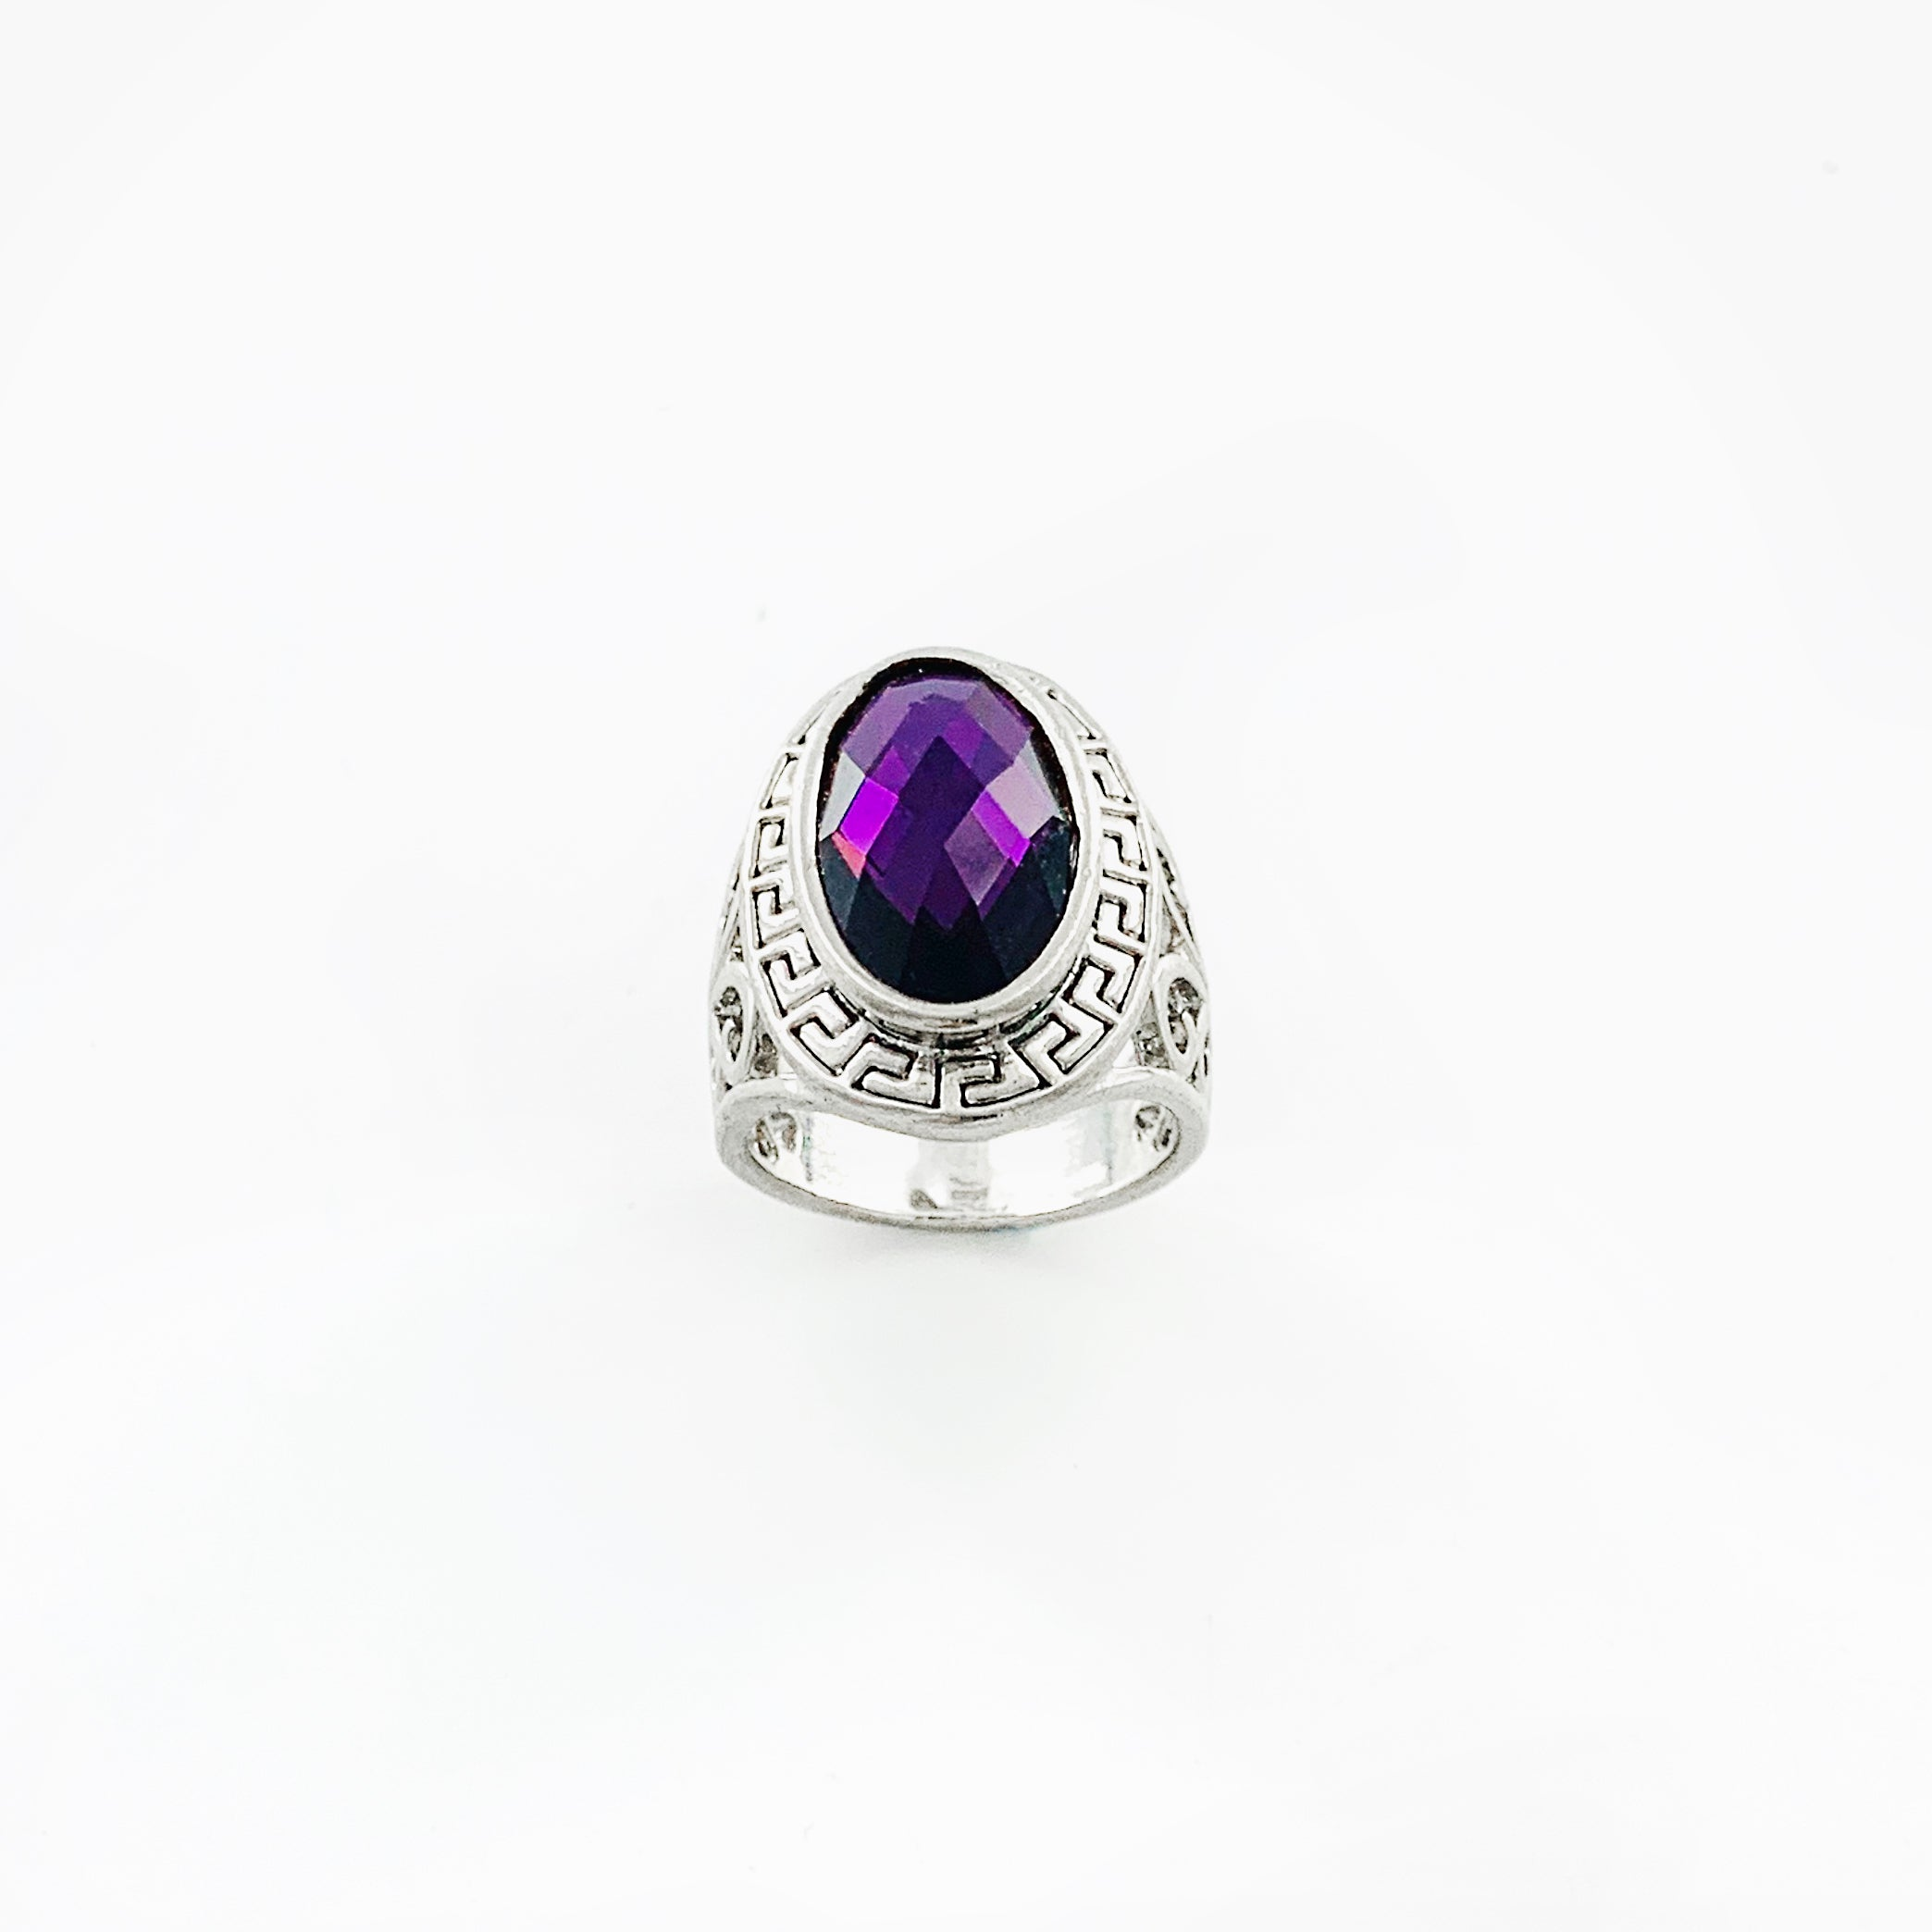 Art deco inspired silver ring with purple stone